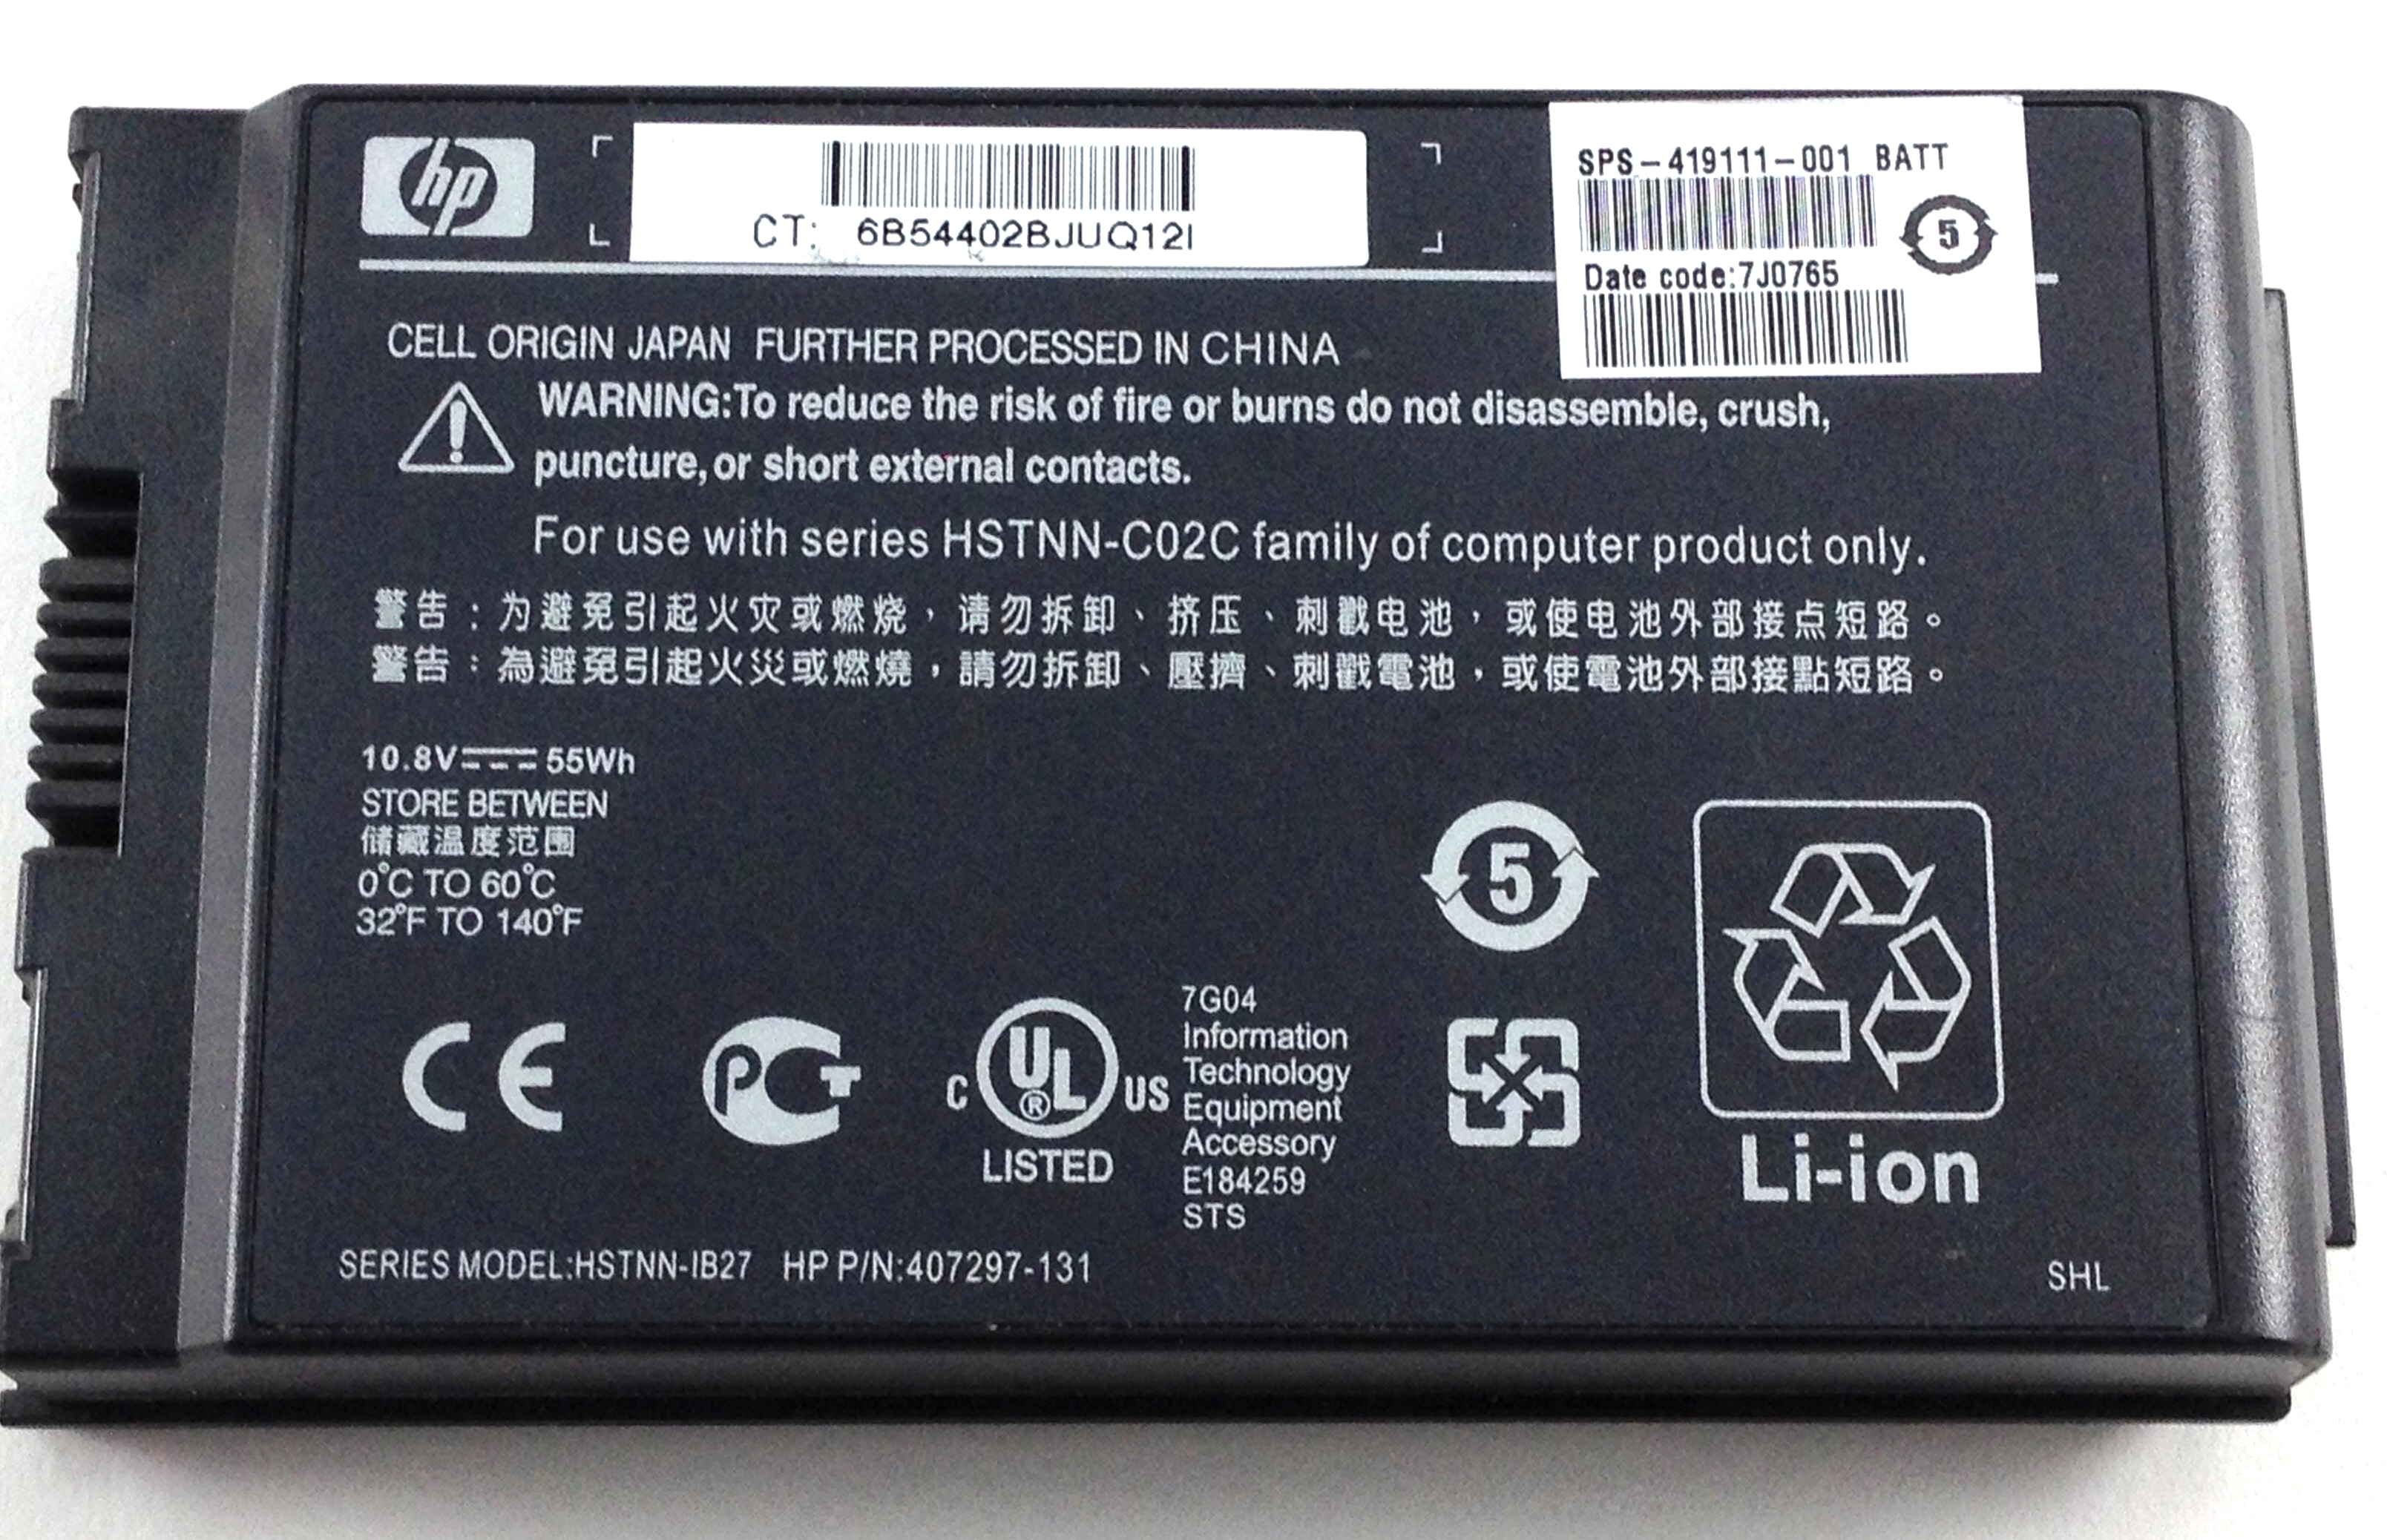 Nc4400 Tc4200 Battery 6-Cell Lithium-Ion 10.8Vdc 5.1Ah (419111-001)